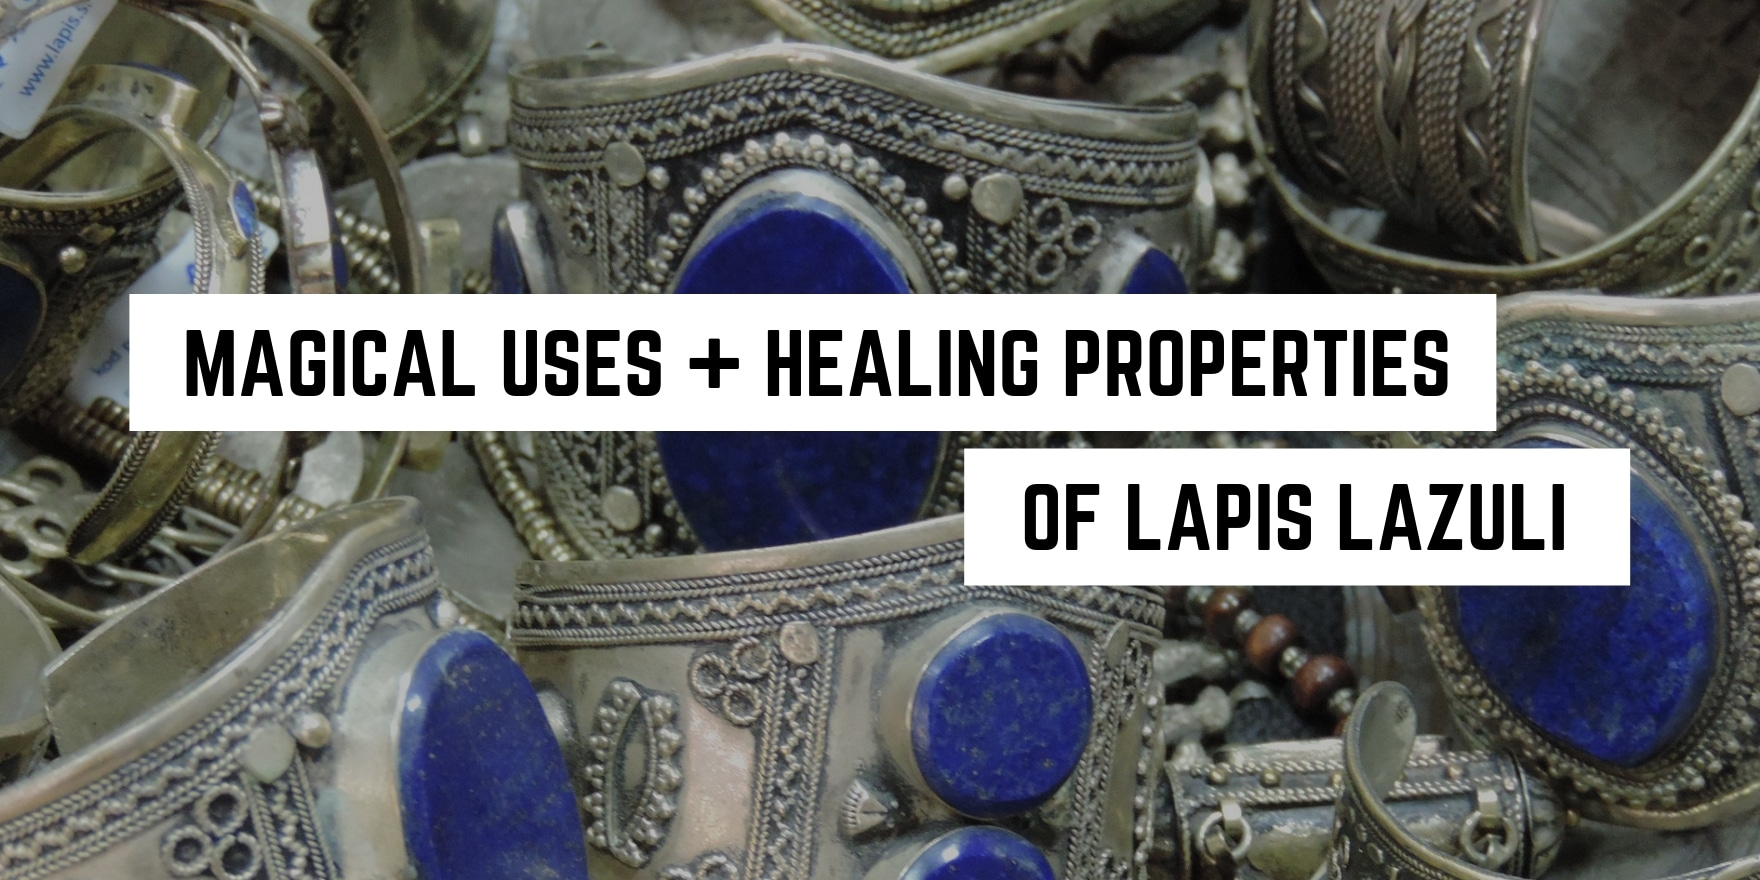 Lapis Lazuli Meaning Healing Uses And Magical Properties